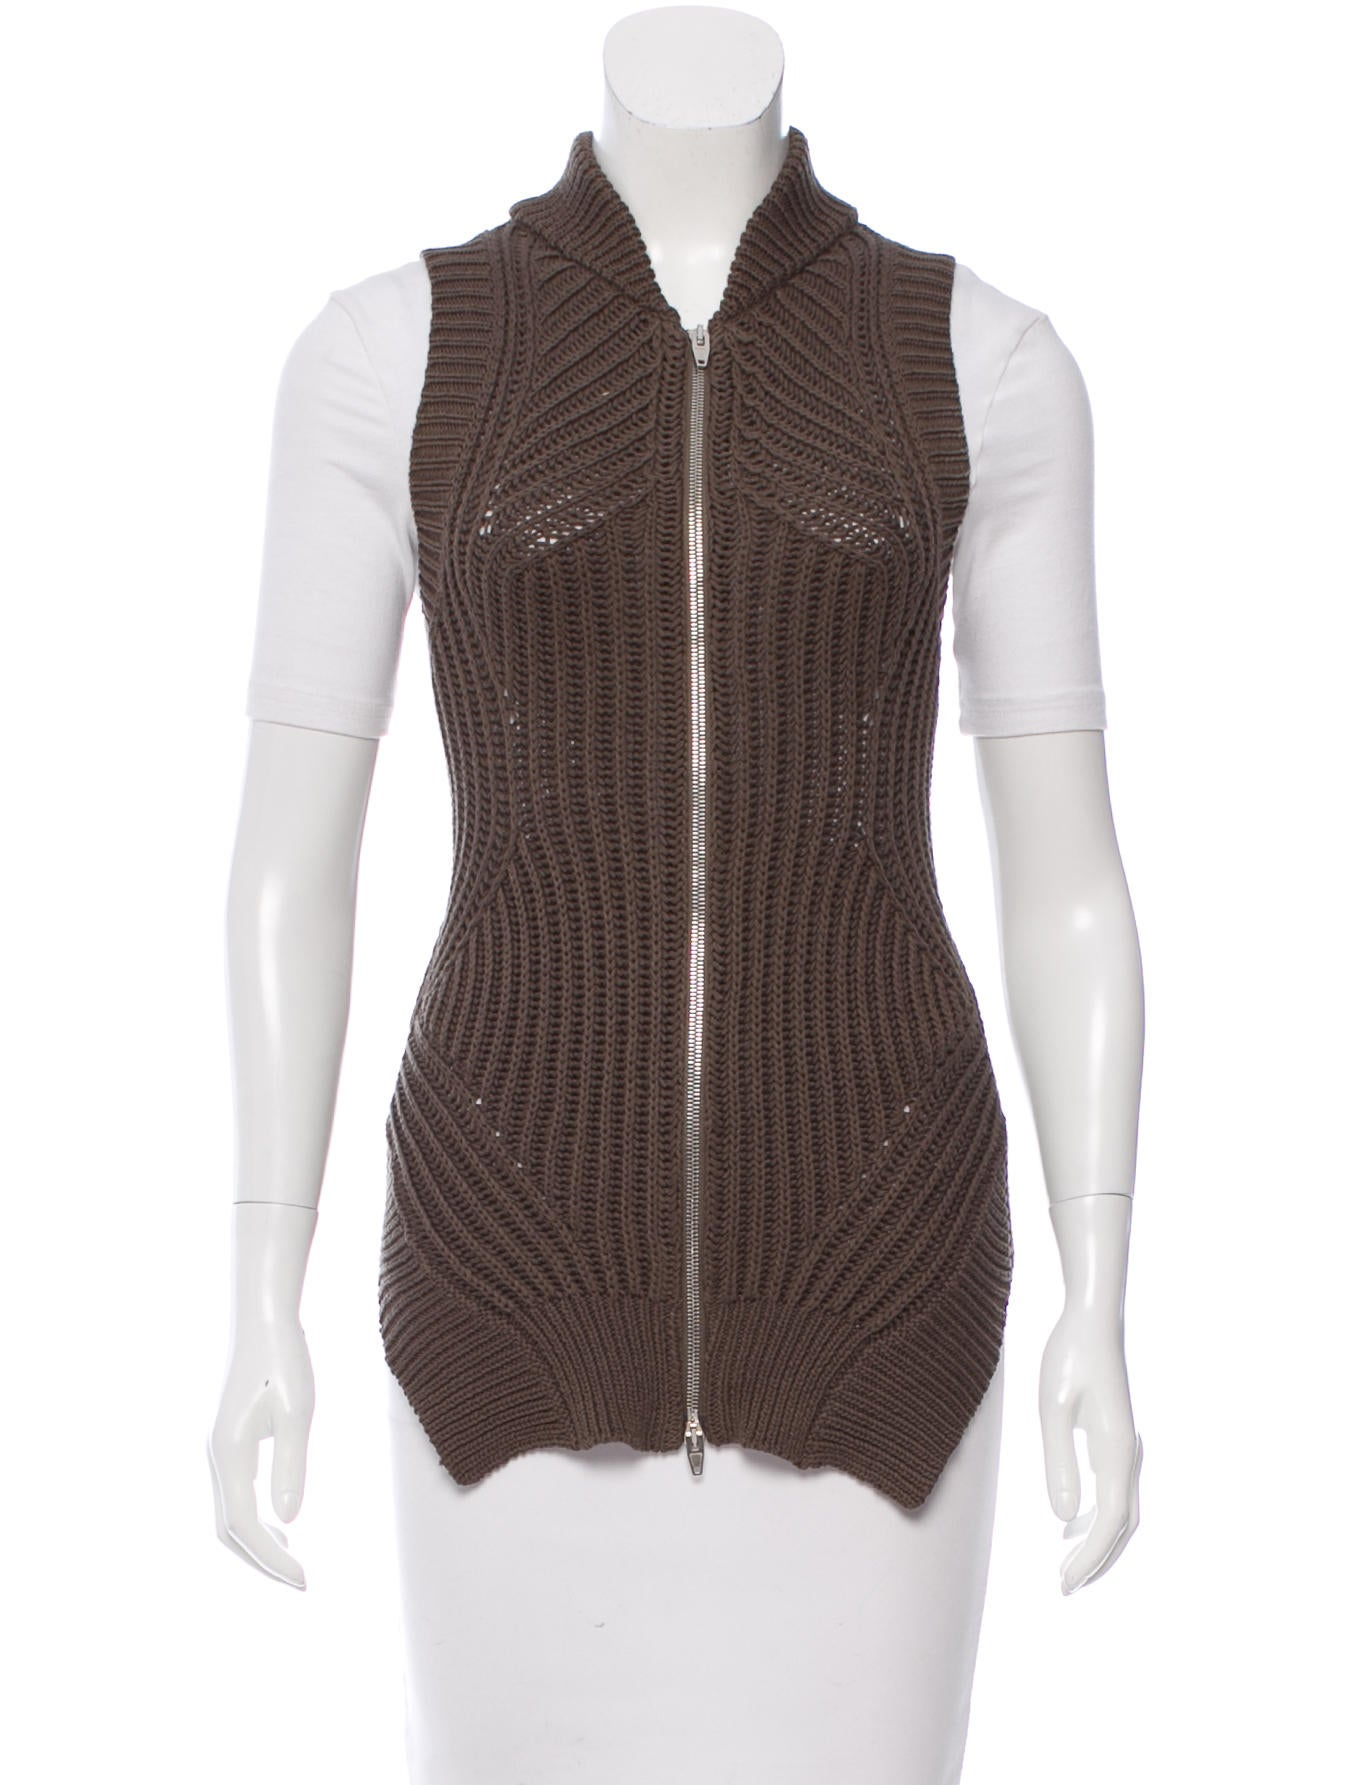 Arm Knitting Vest : Alexander wang zip accented knit vest clothing